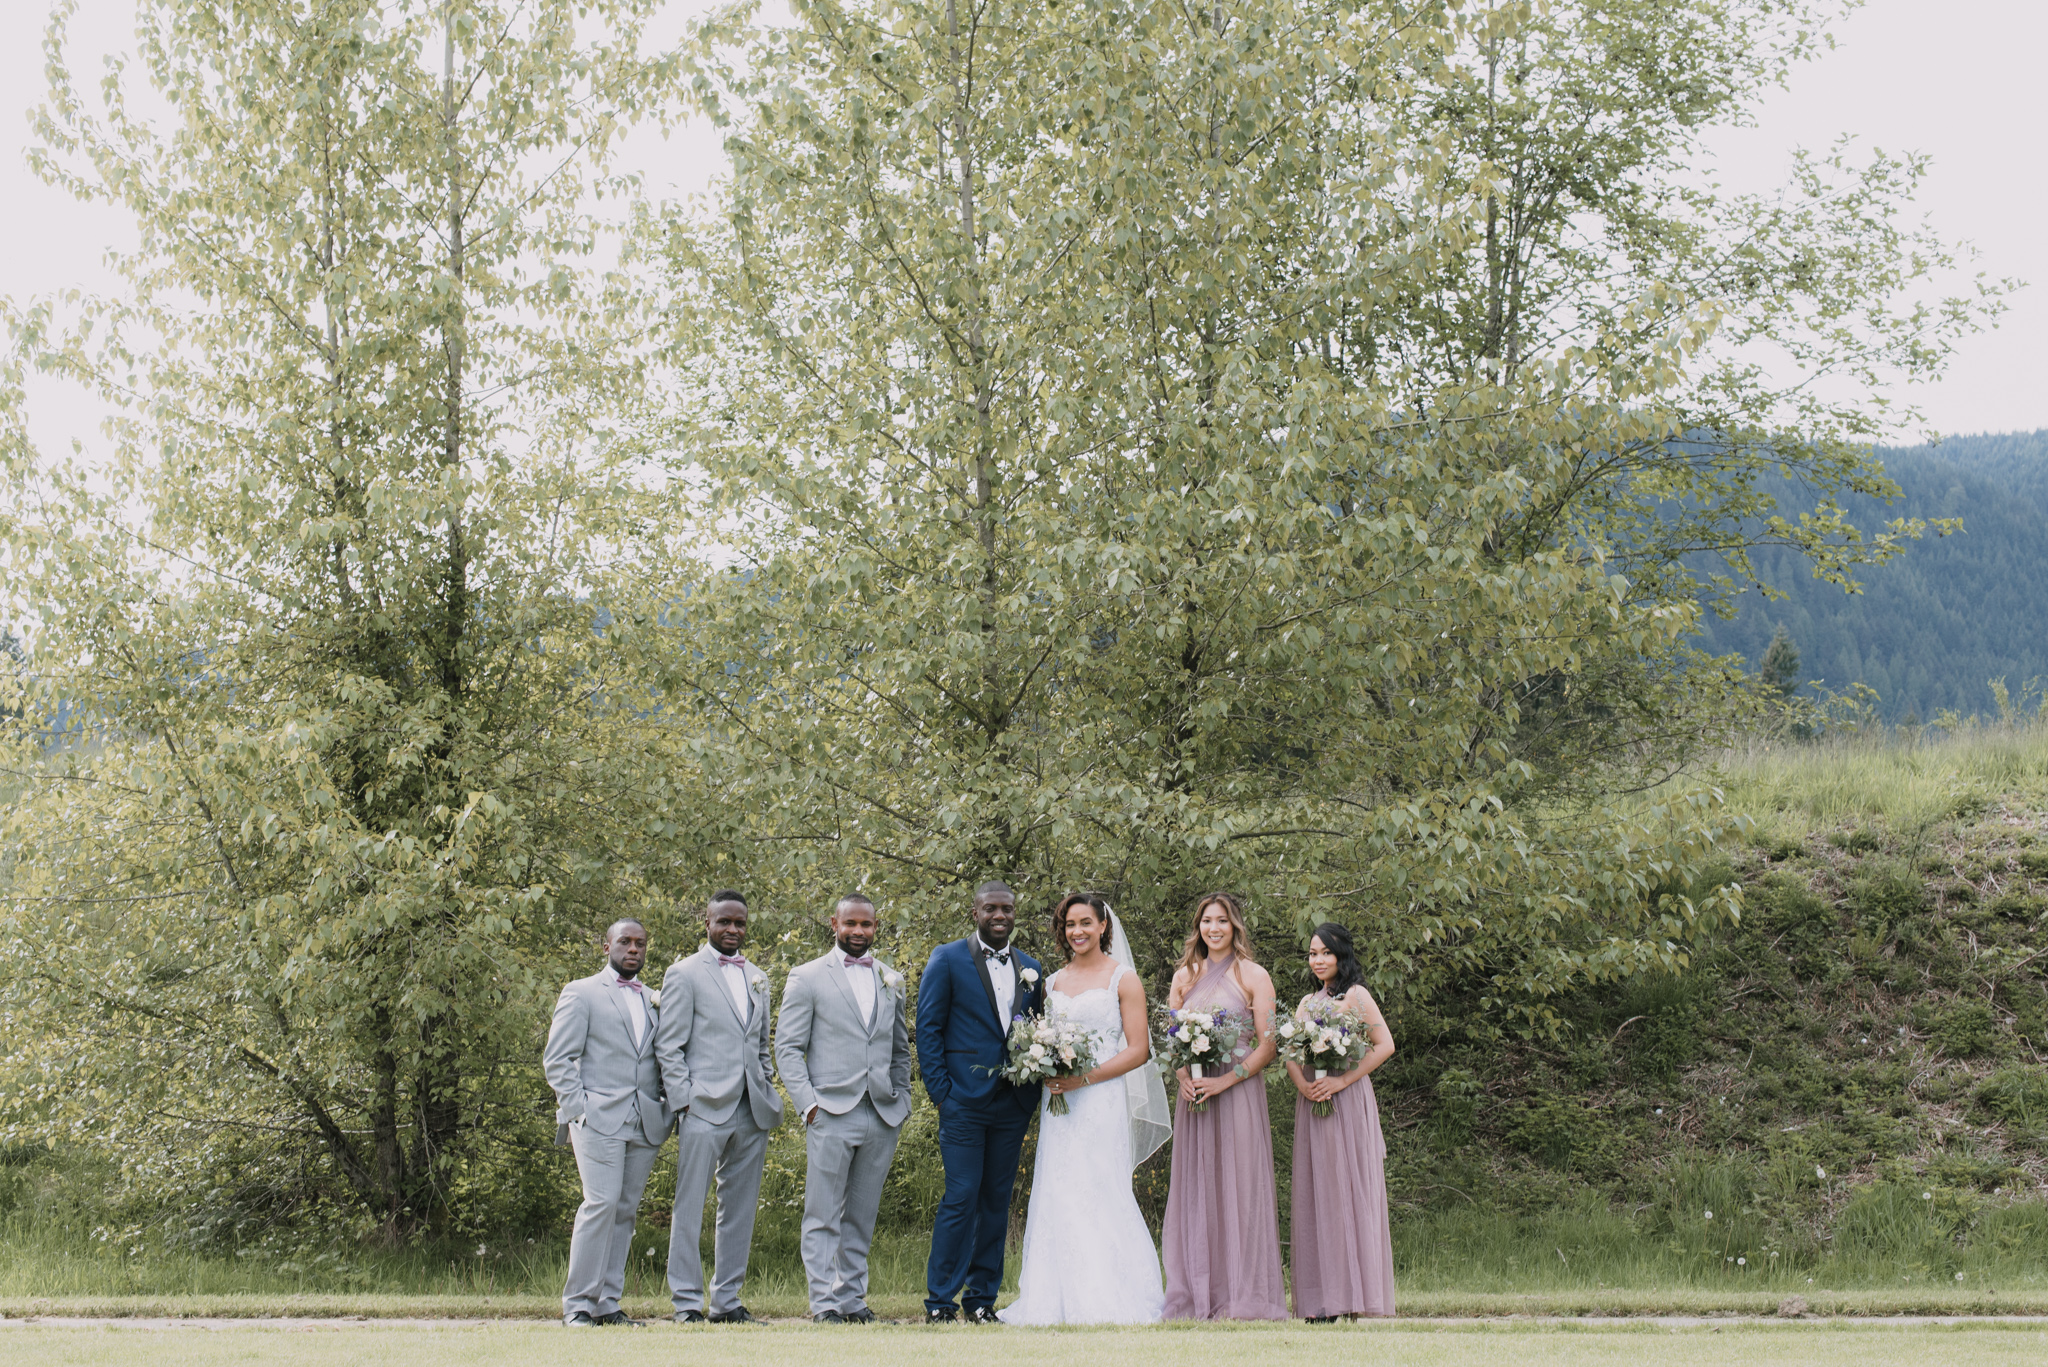 Gabe and Dwight_Westwood Plateau_Katie Powell Photography-34.jpg